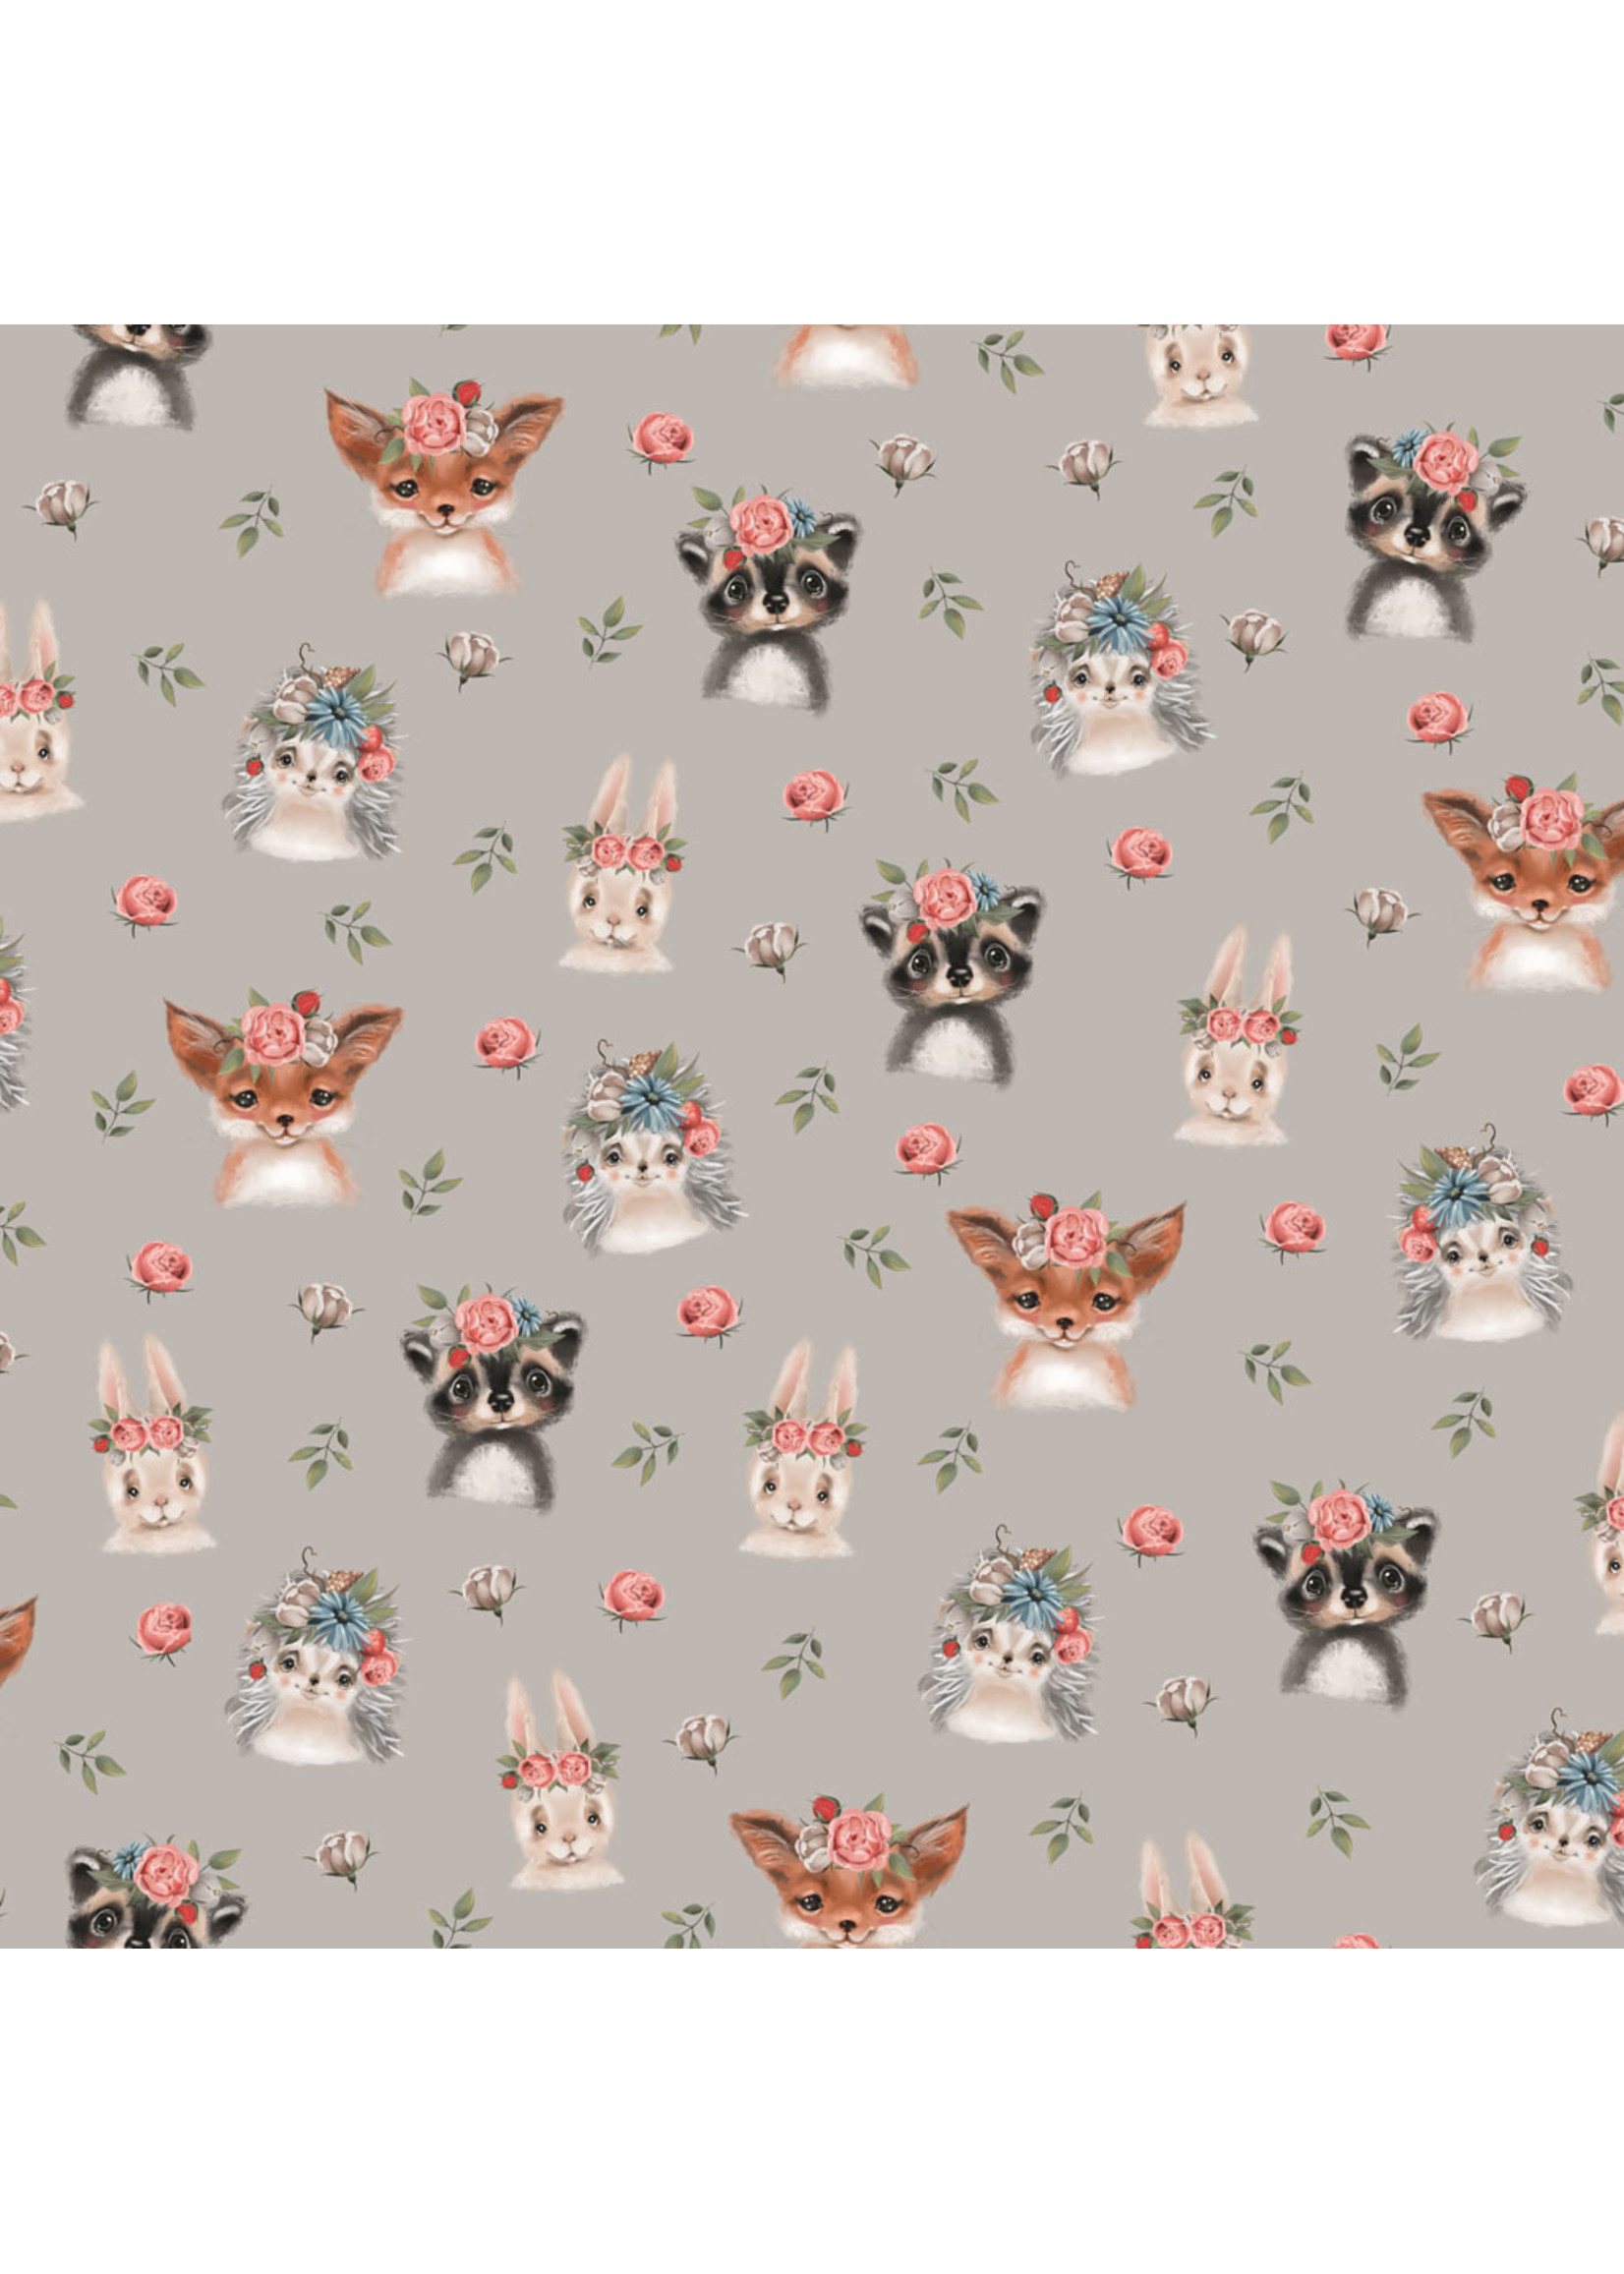 Designed for you by Poppy Jersey GOTS Digital Woodland Animals